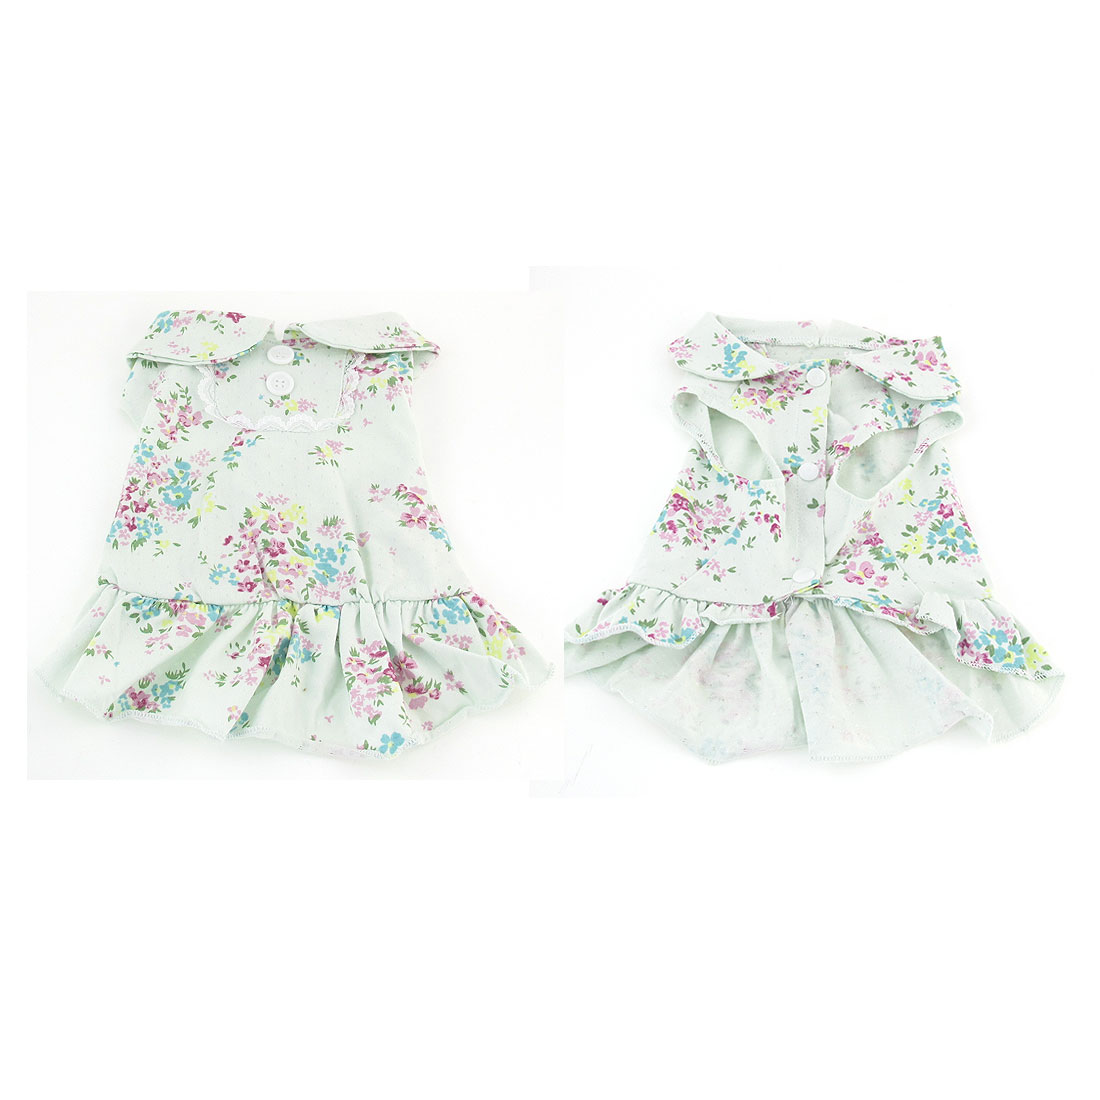 Pale Green Flower Printed Pets Chihuahua Dog Clothes Apparel Dress Size M